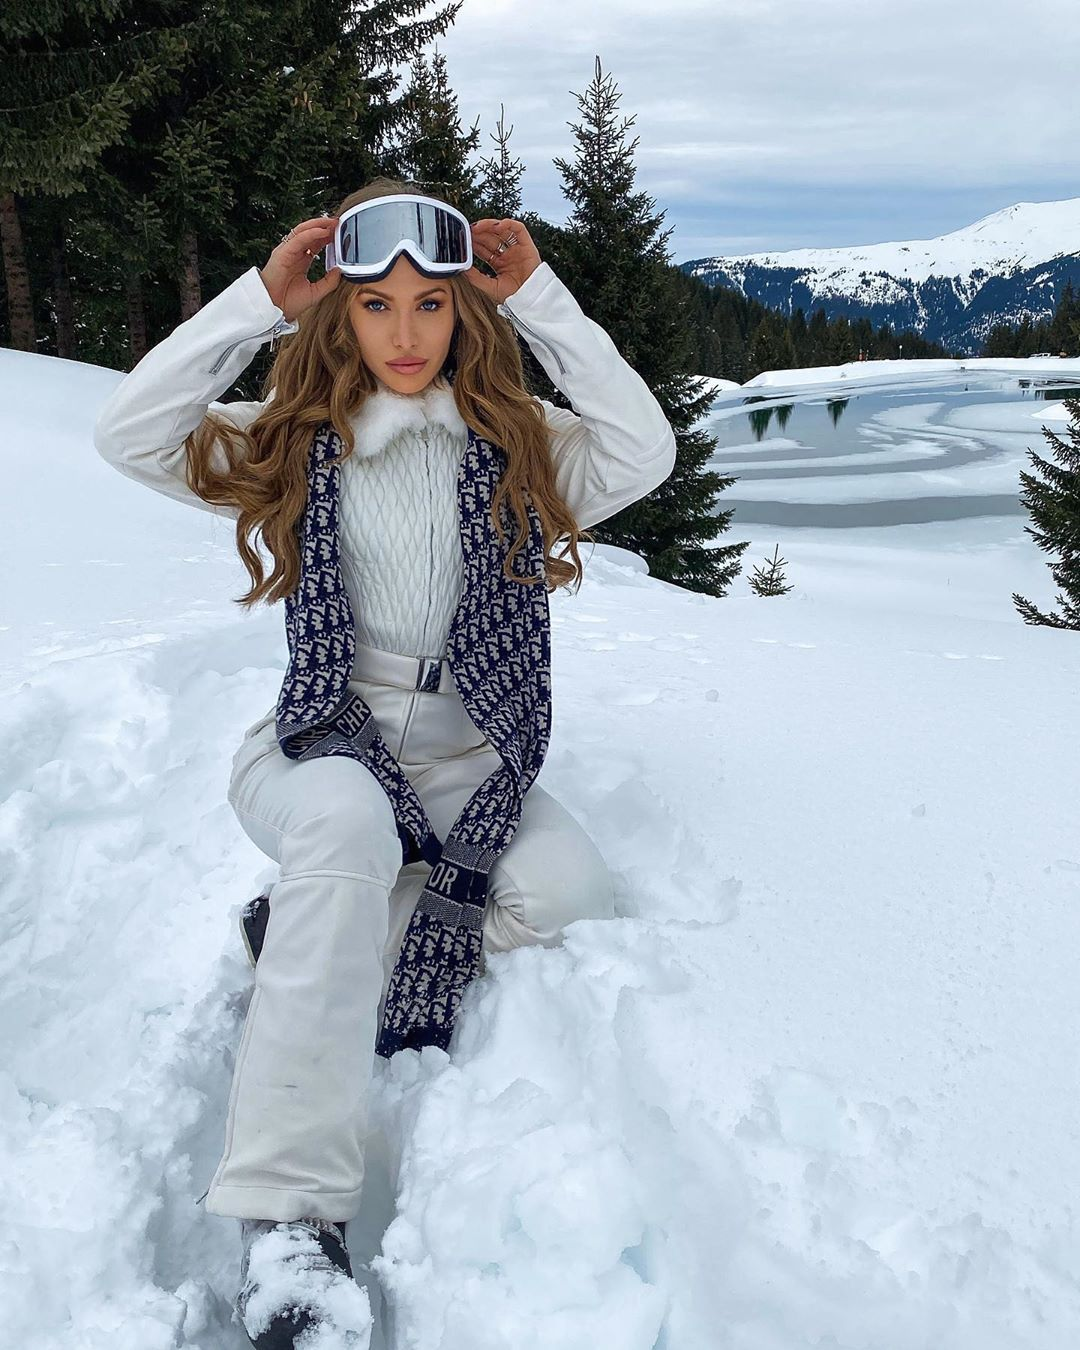 Cute ski outfits and ski suits